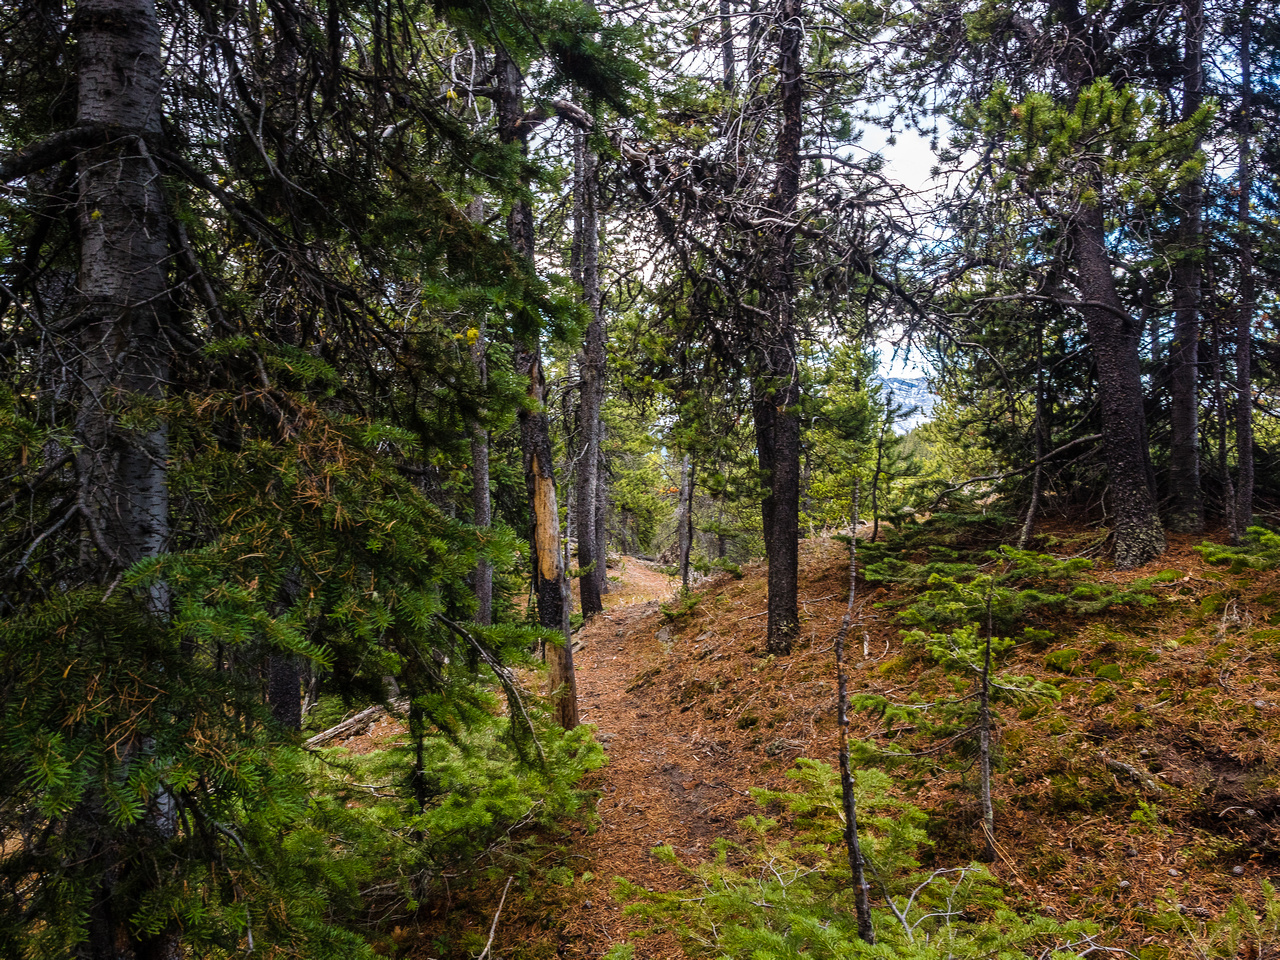 There's no obvious trail, but there is a track I'm following through the light forest.